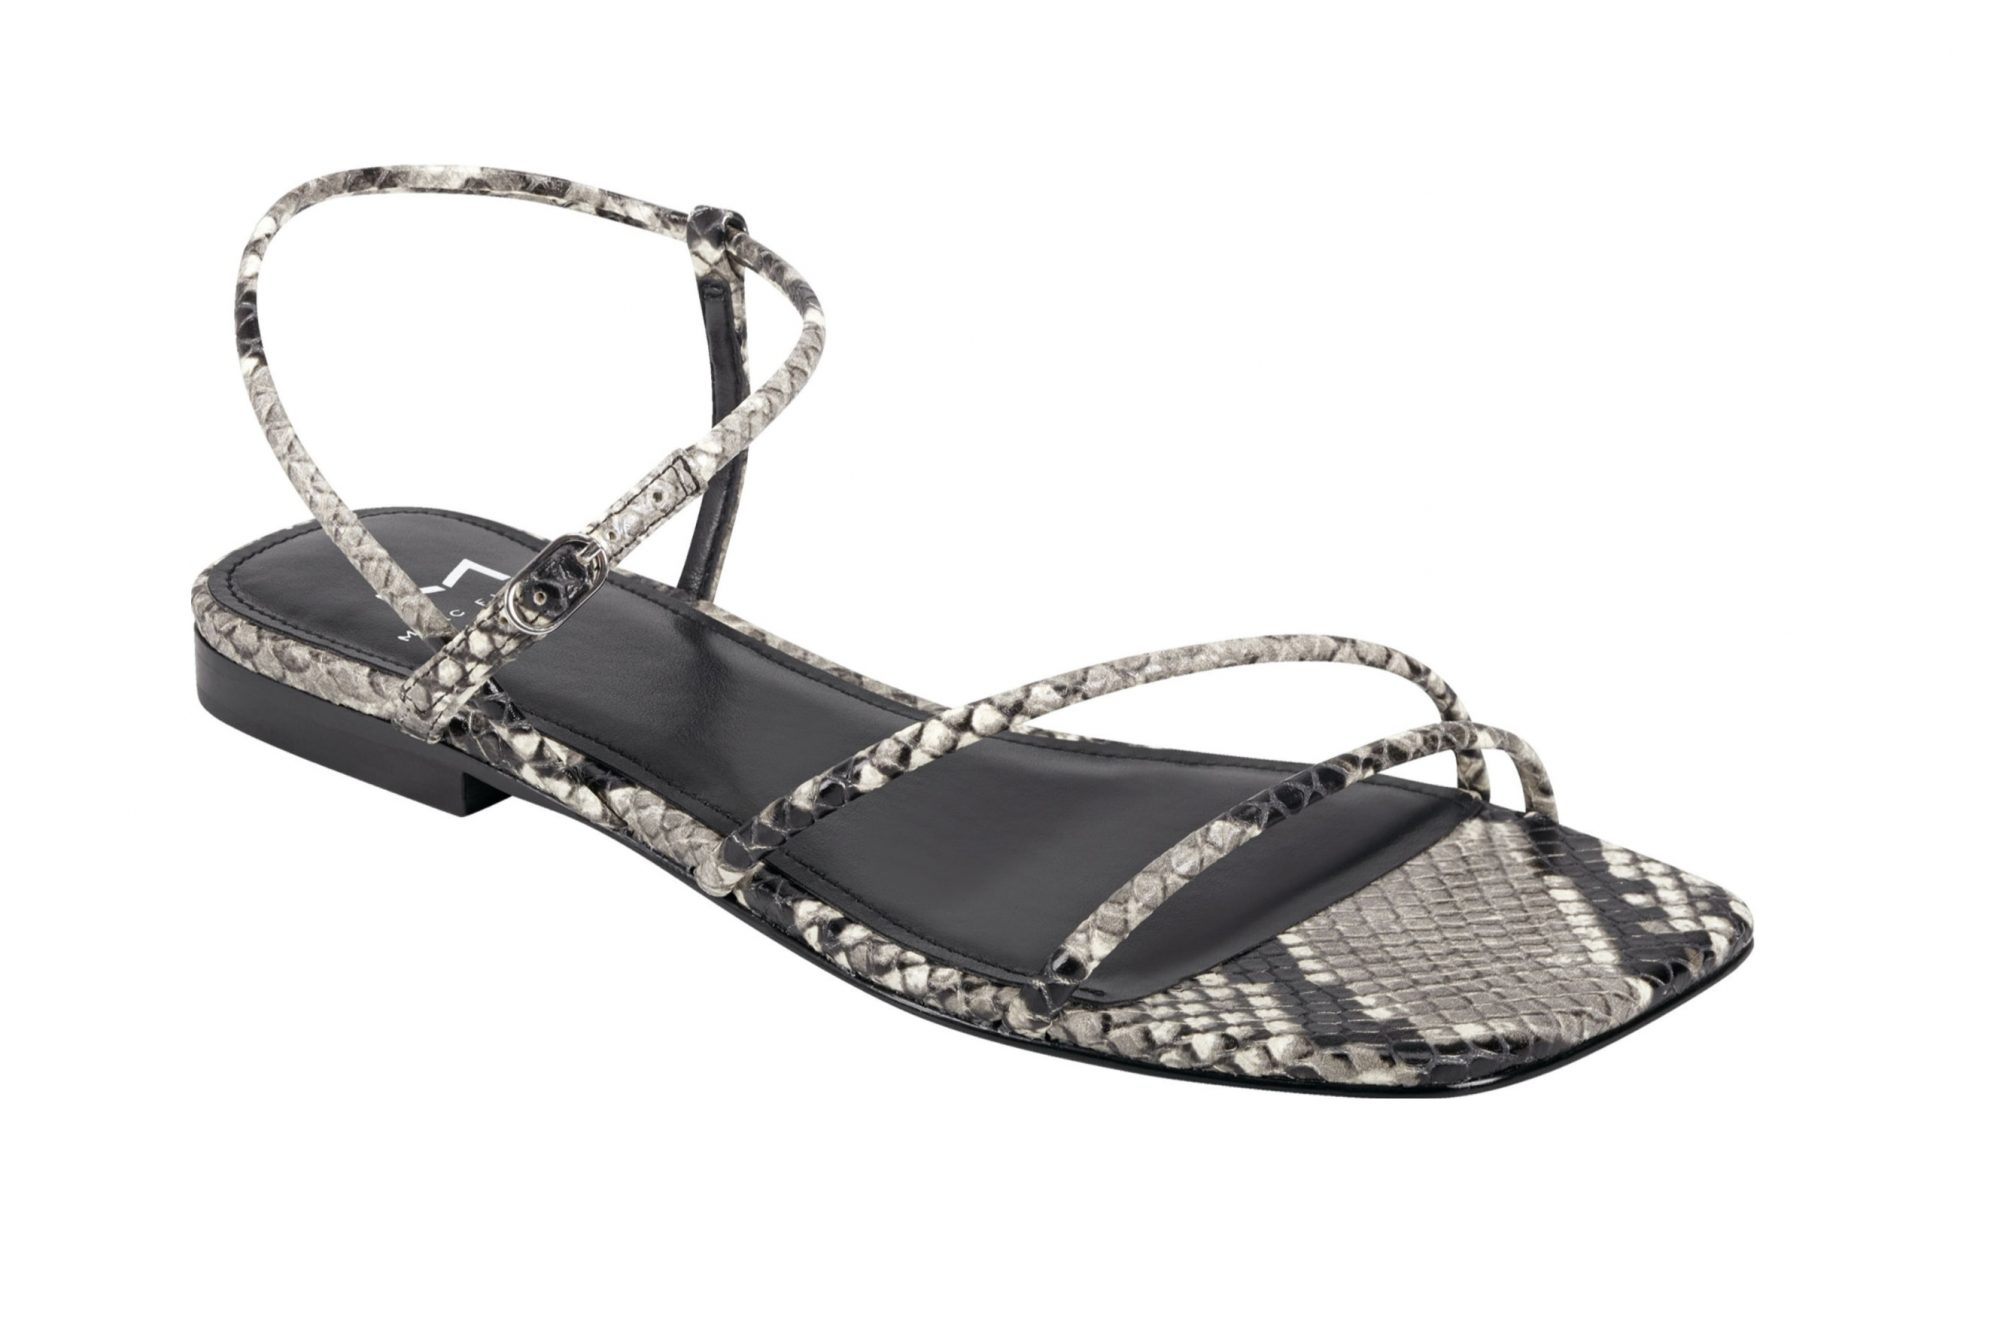 square-toed sandals heels shoe trend 2020